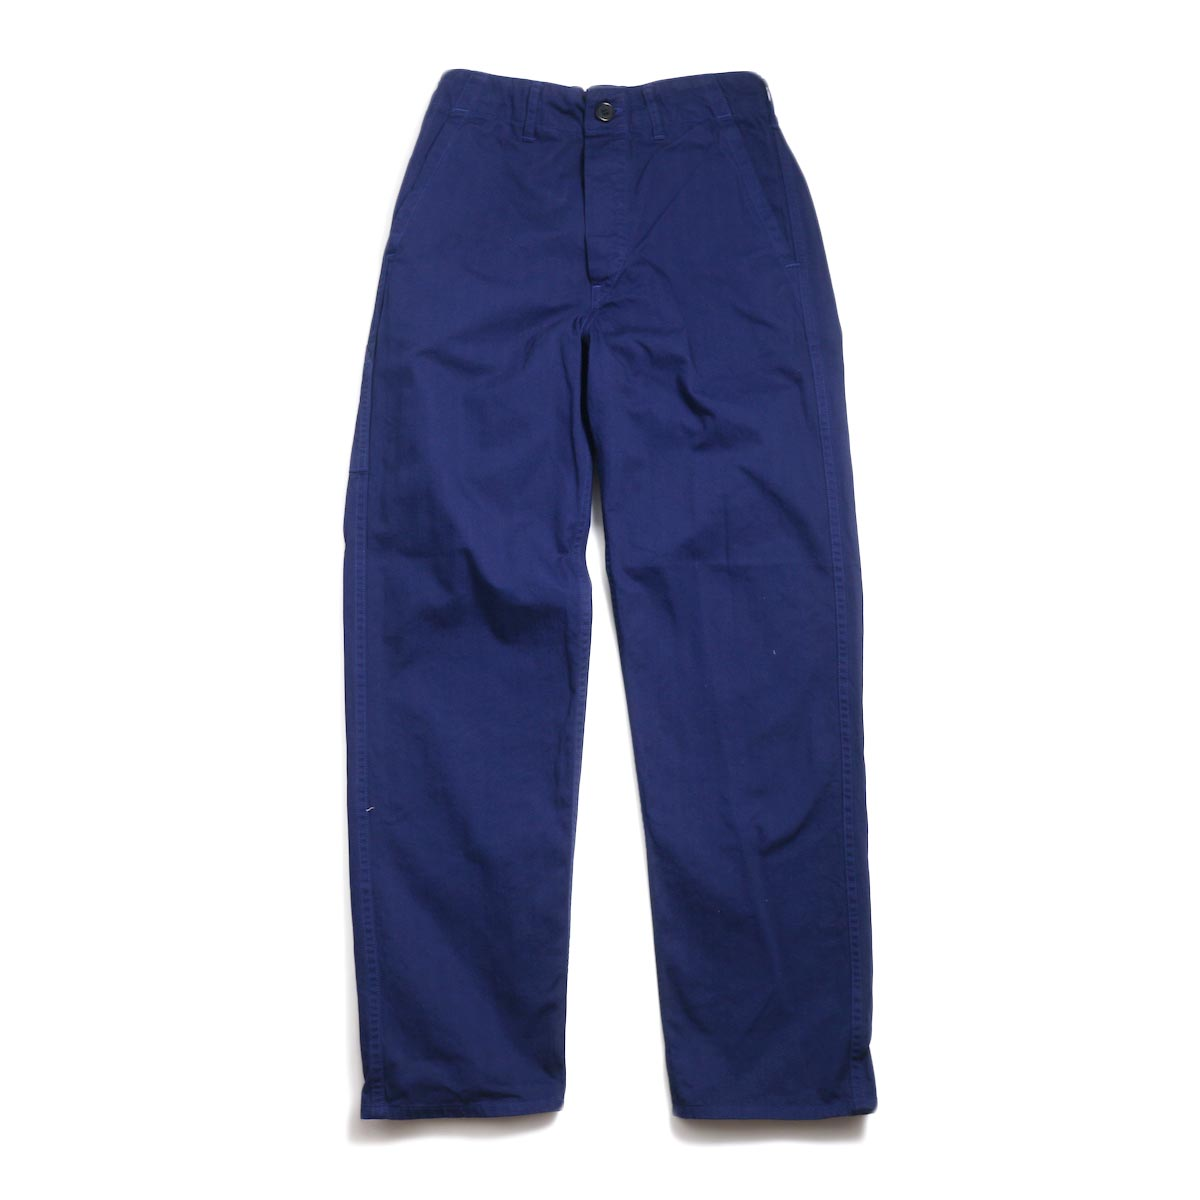 orSlow / French Work Pants -Blue